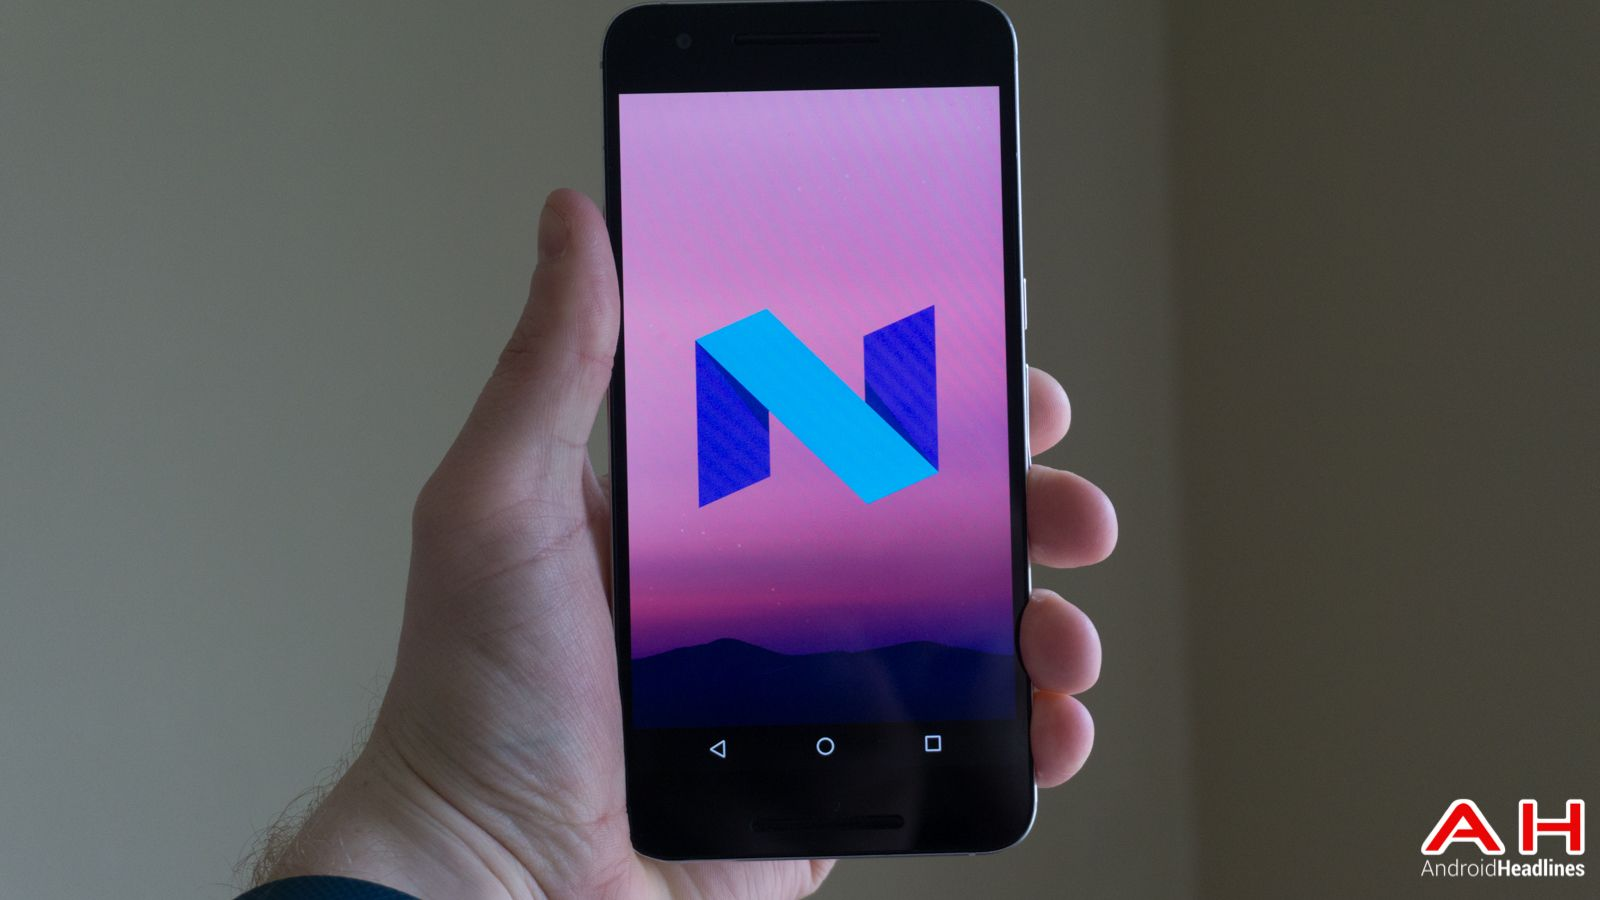 Android N Brings Bigger & Clearer Cards For Recent Apps #Android #CES2016 #Google